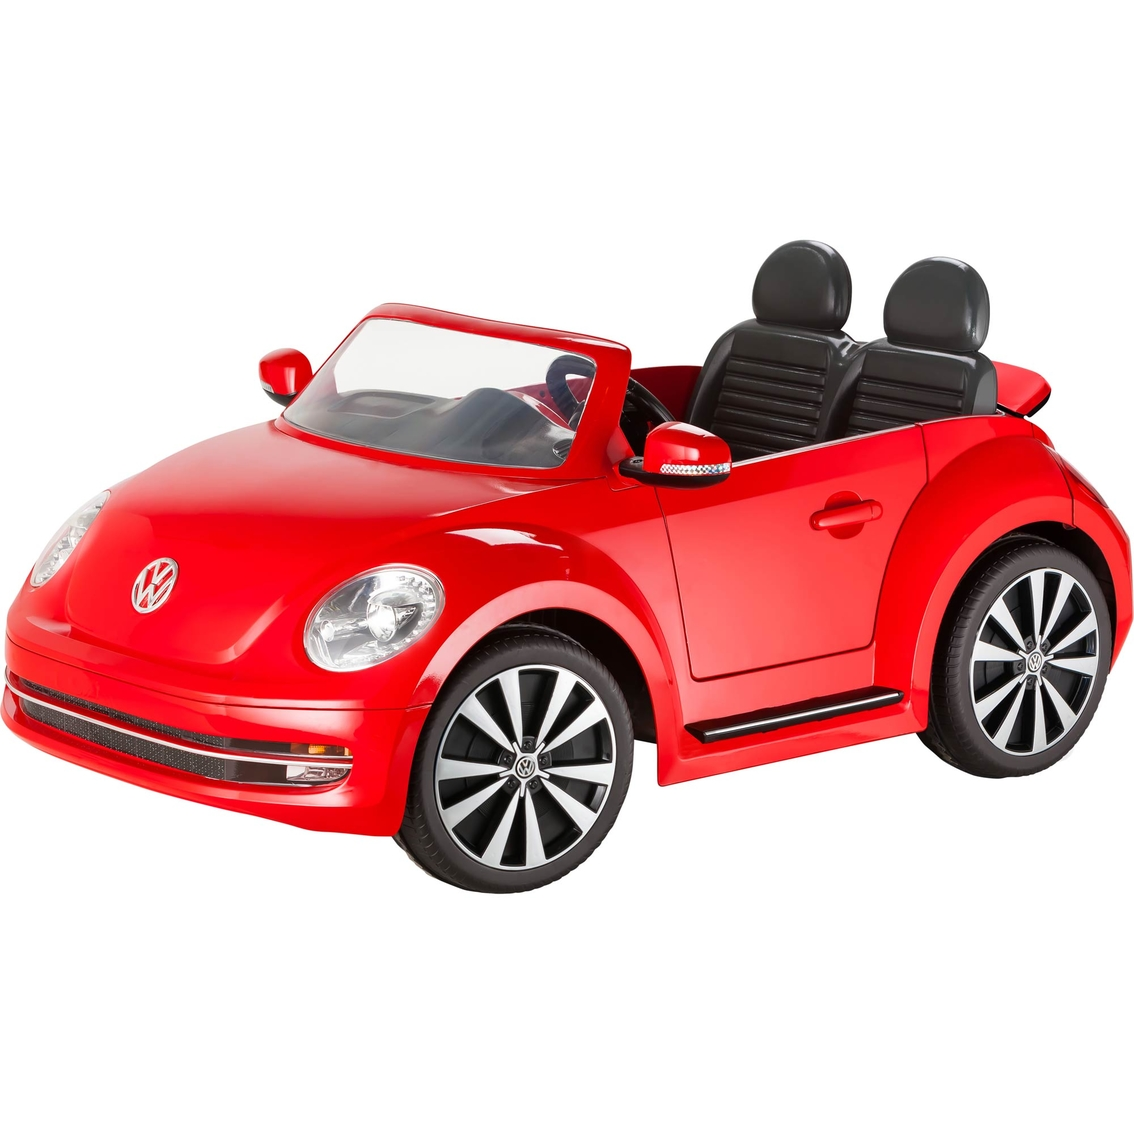 Kidtrax Vw Beetle 12v Electric Ride On